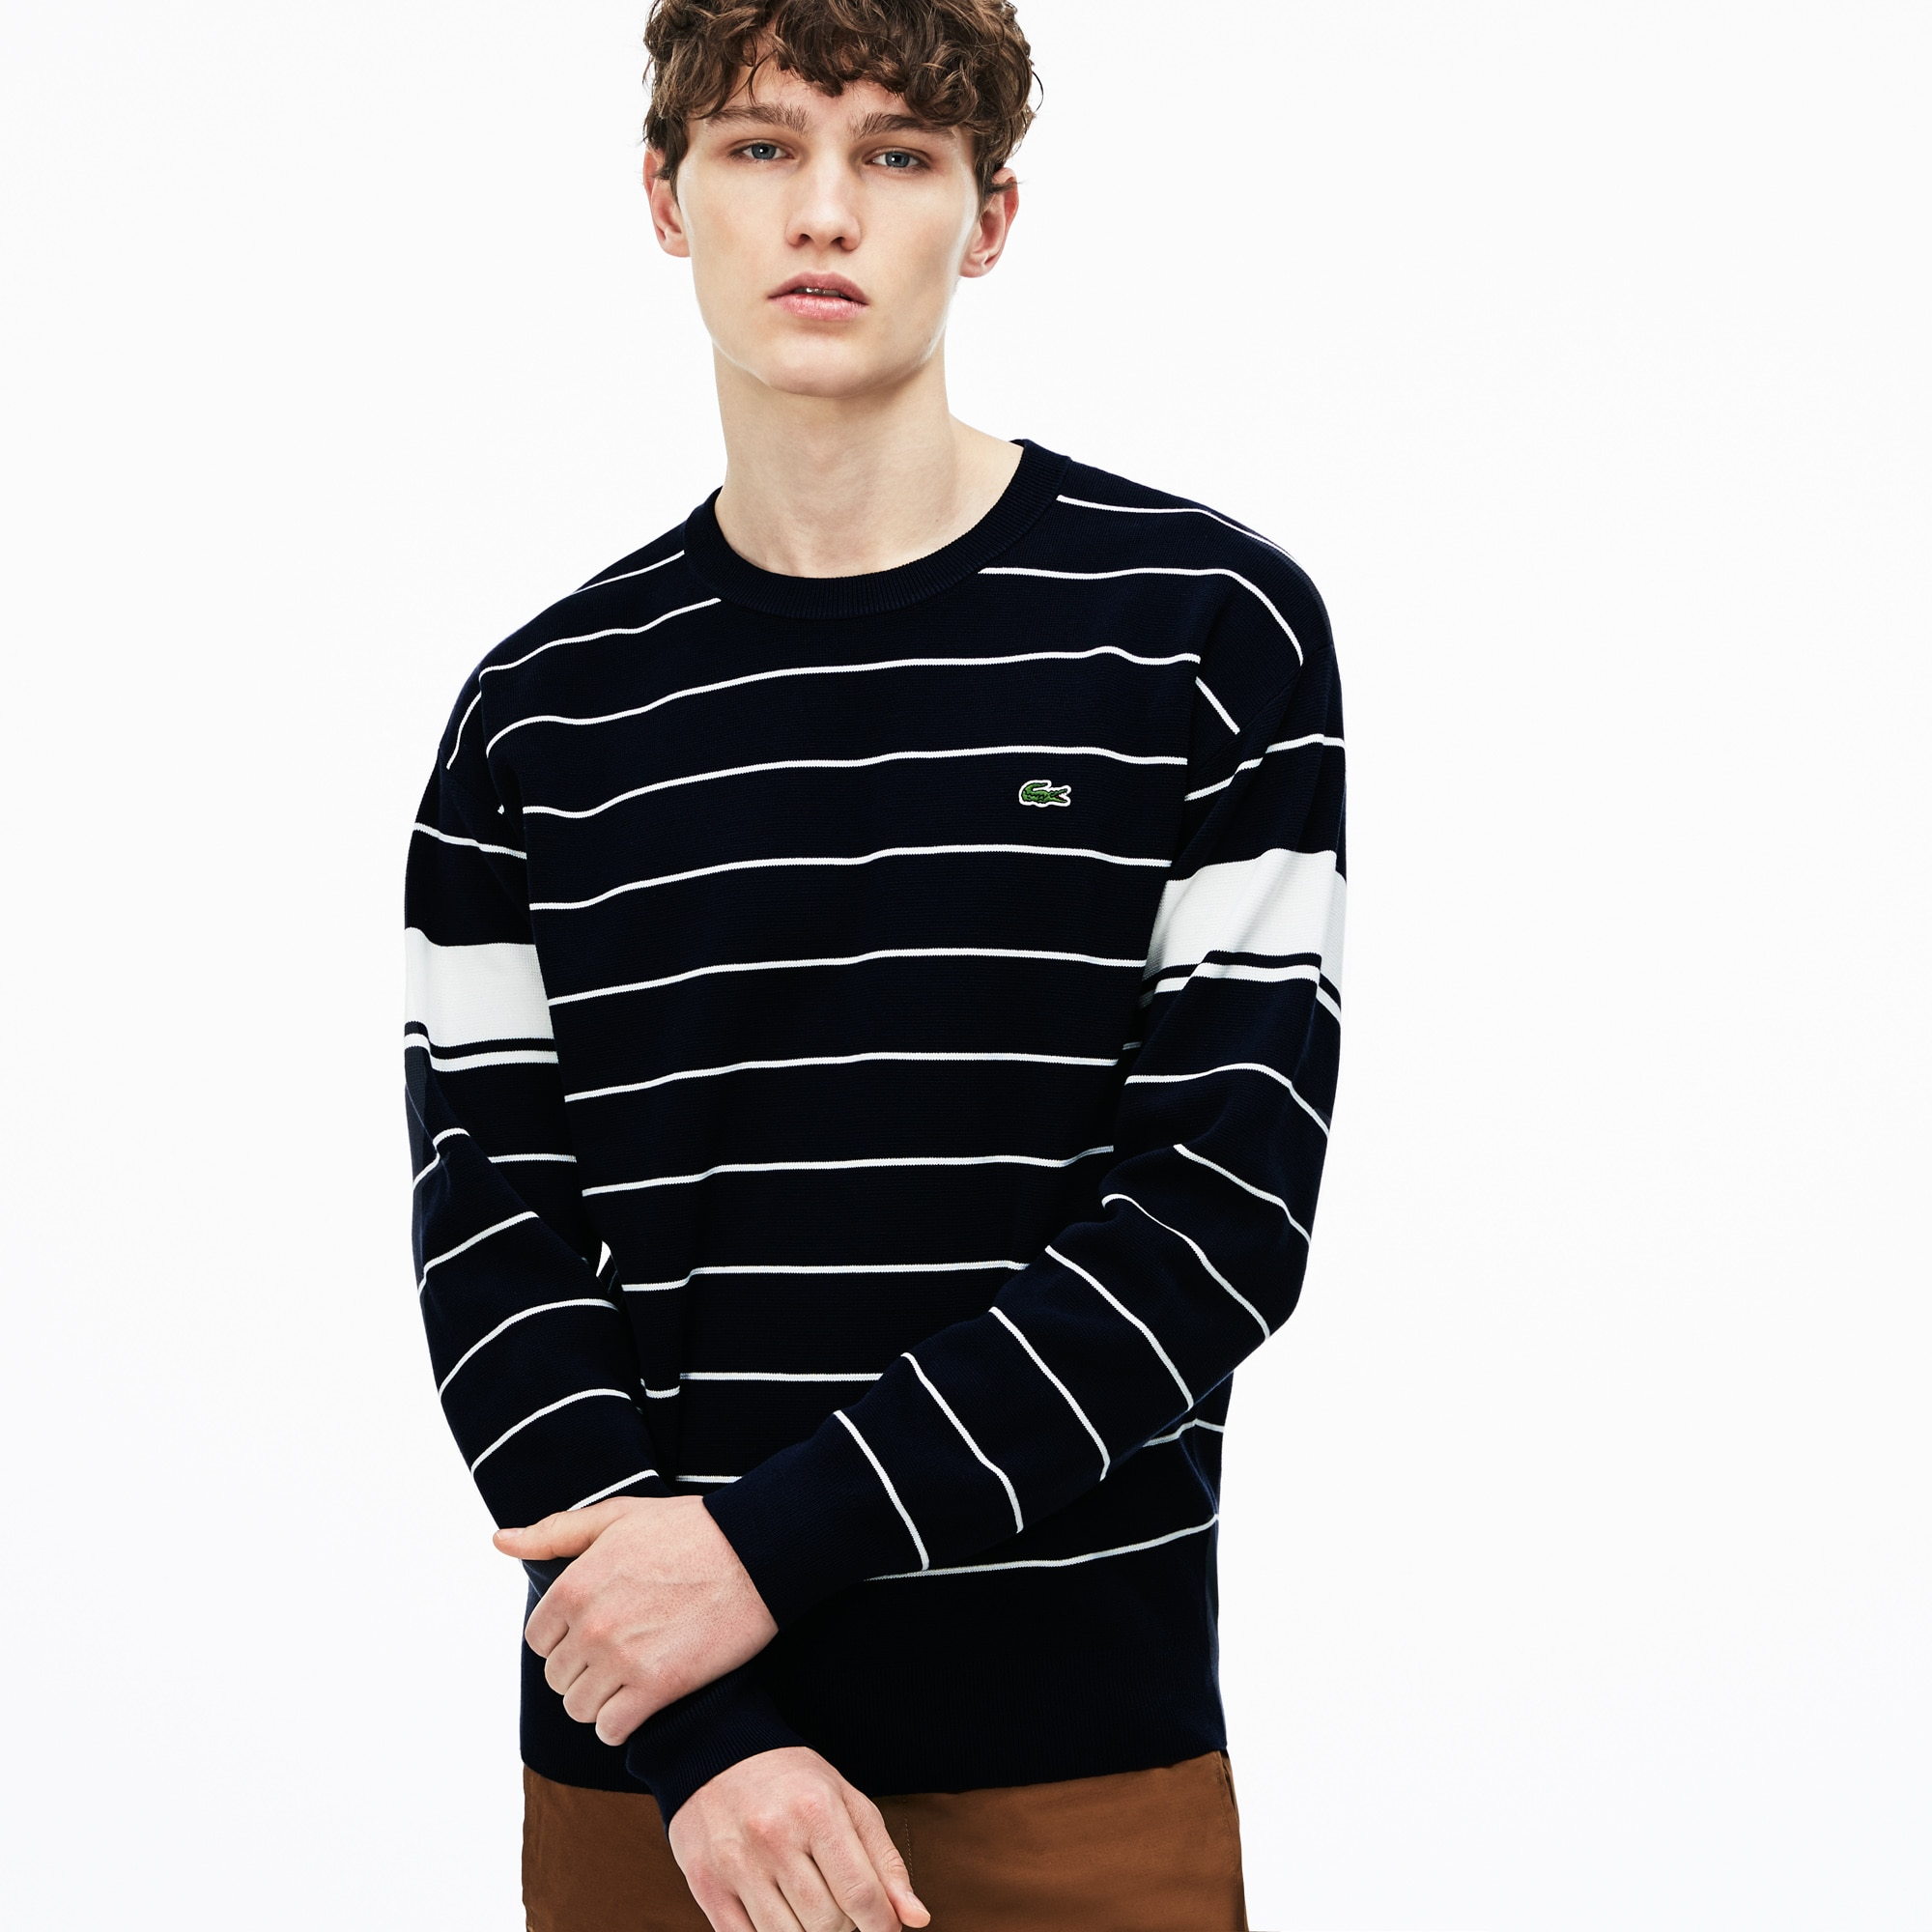 Men's Crew Neck Contrast Bands Striped Milano Cotton Sweater